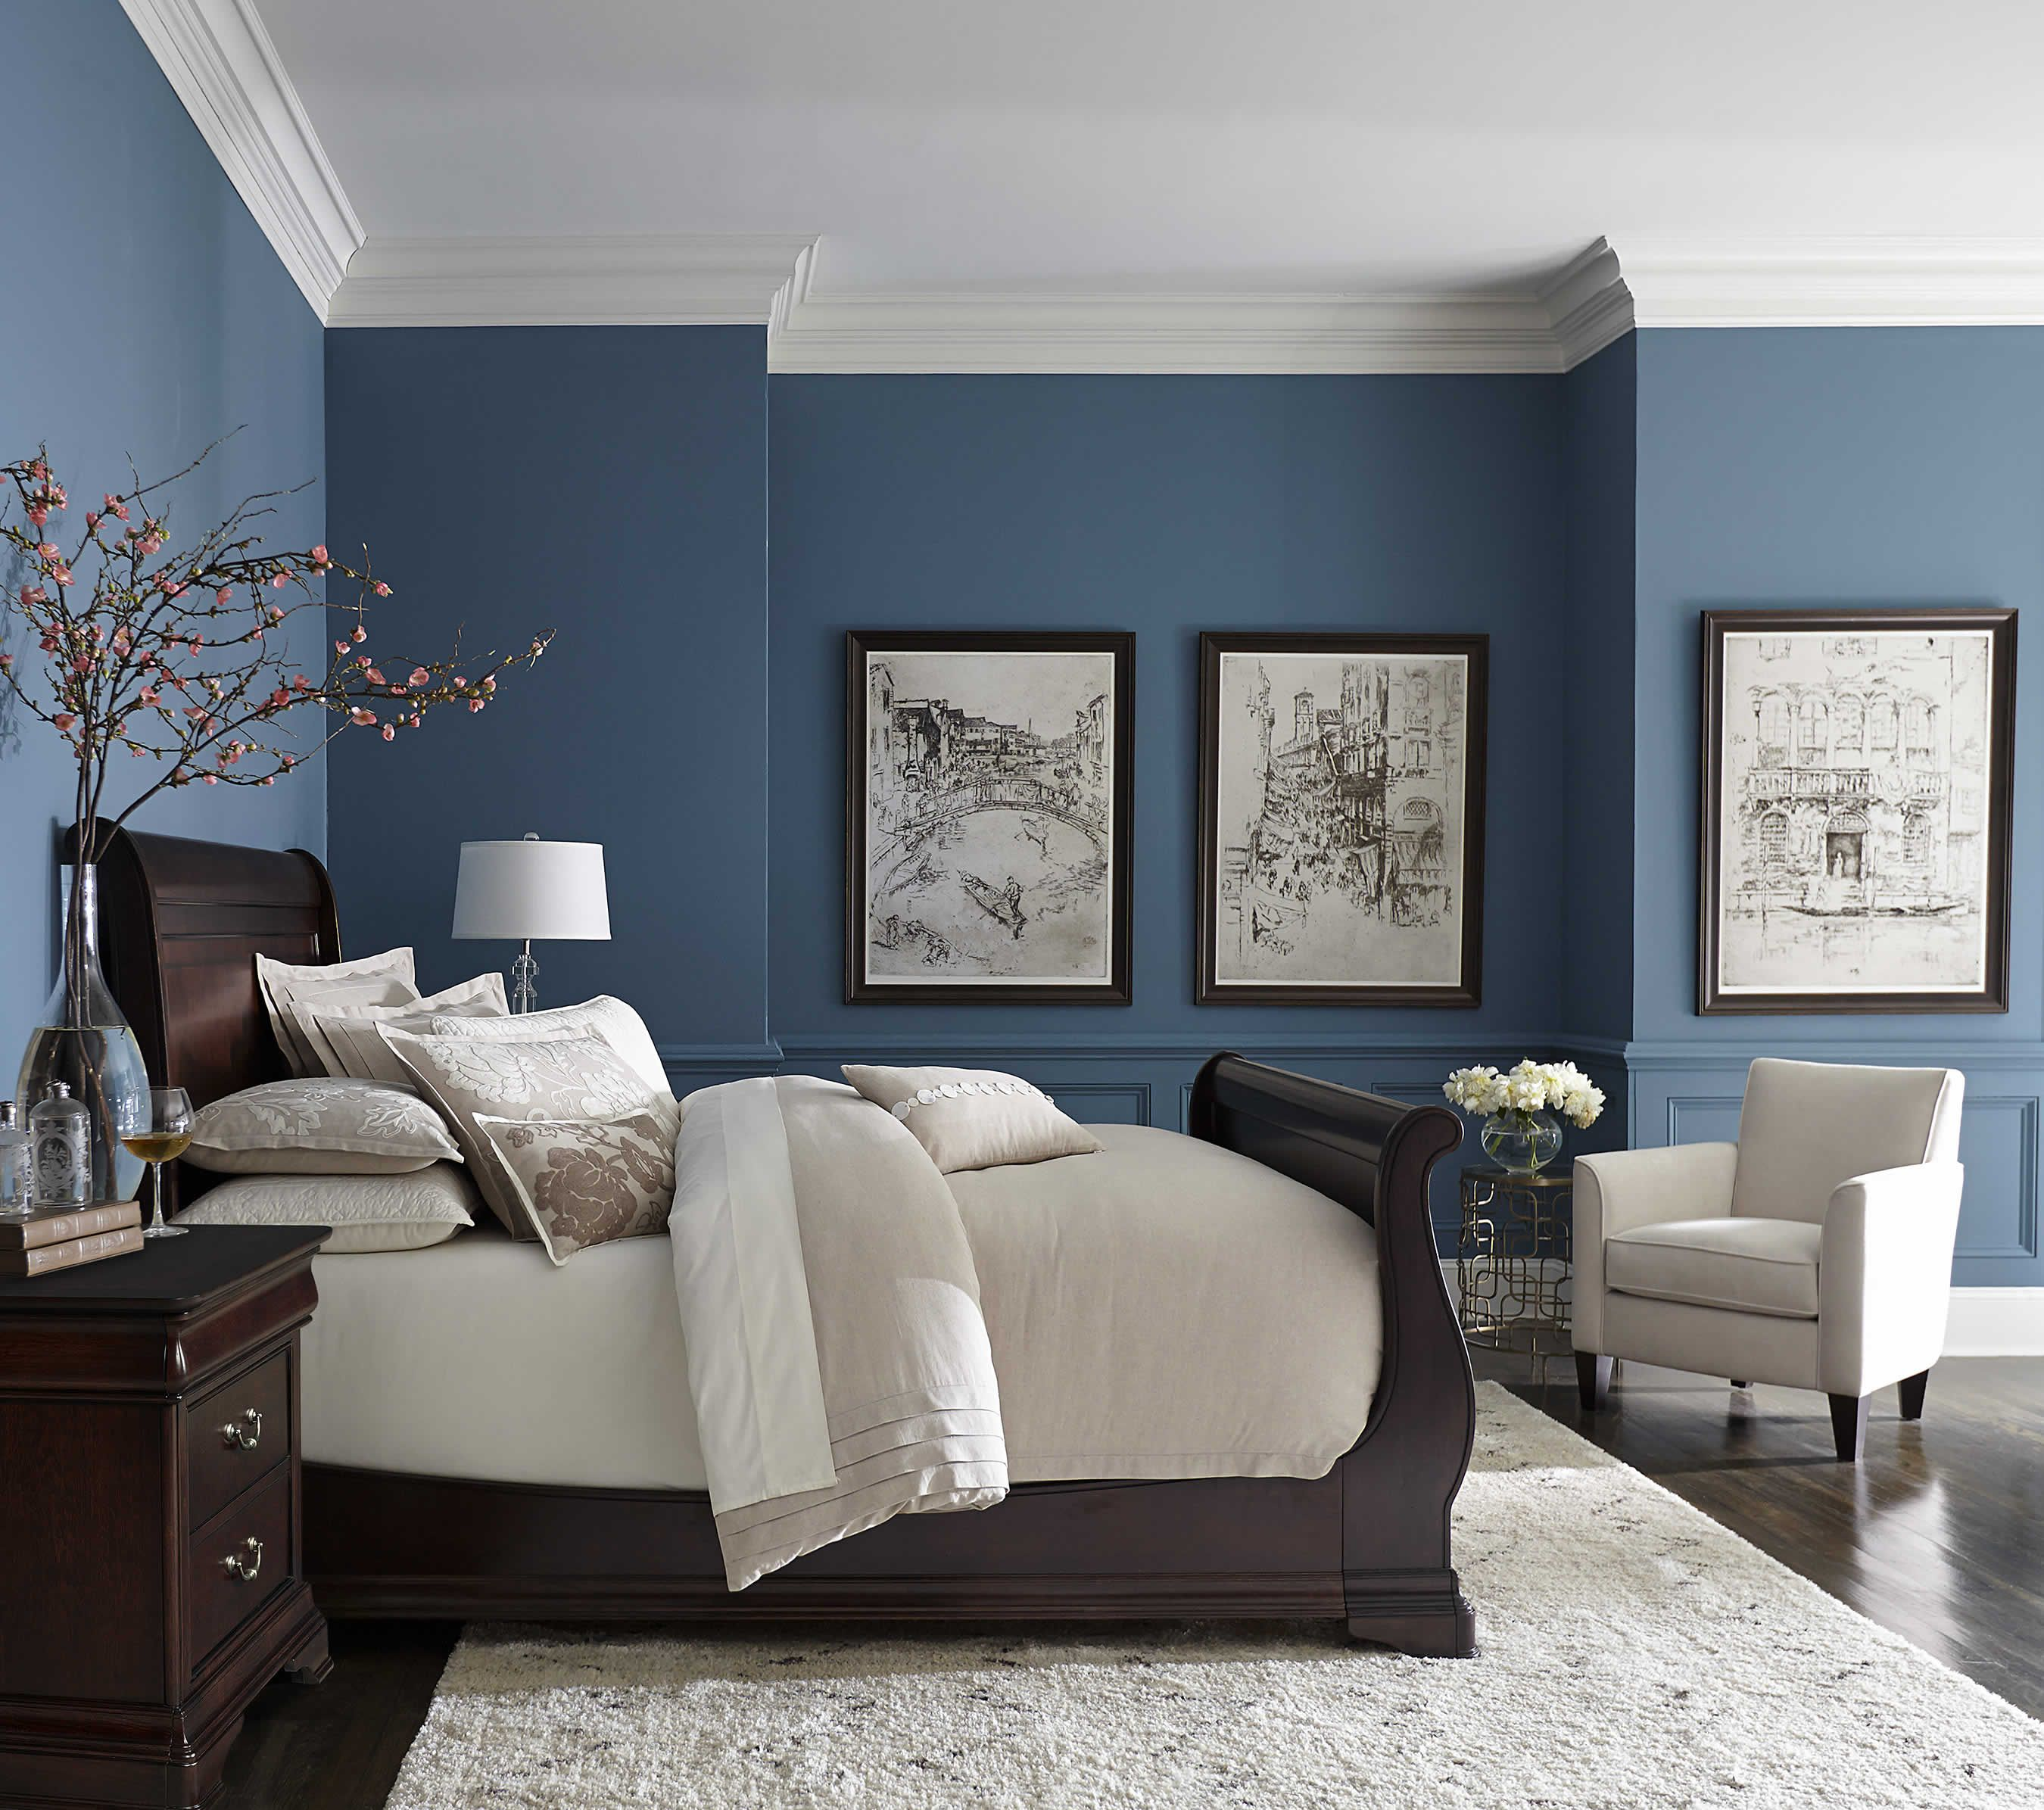 Bedroom Decorating Ideas Dark Brown Furniture Bedroom Decor Ideas Bedroom Clip Art Black And White Bedroom With Bed Under Window: Pretty Blue Color With White Crown Molding